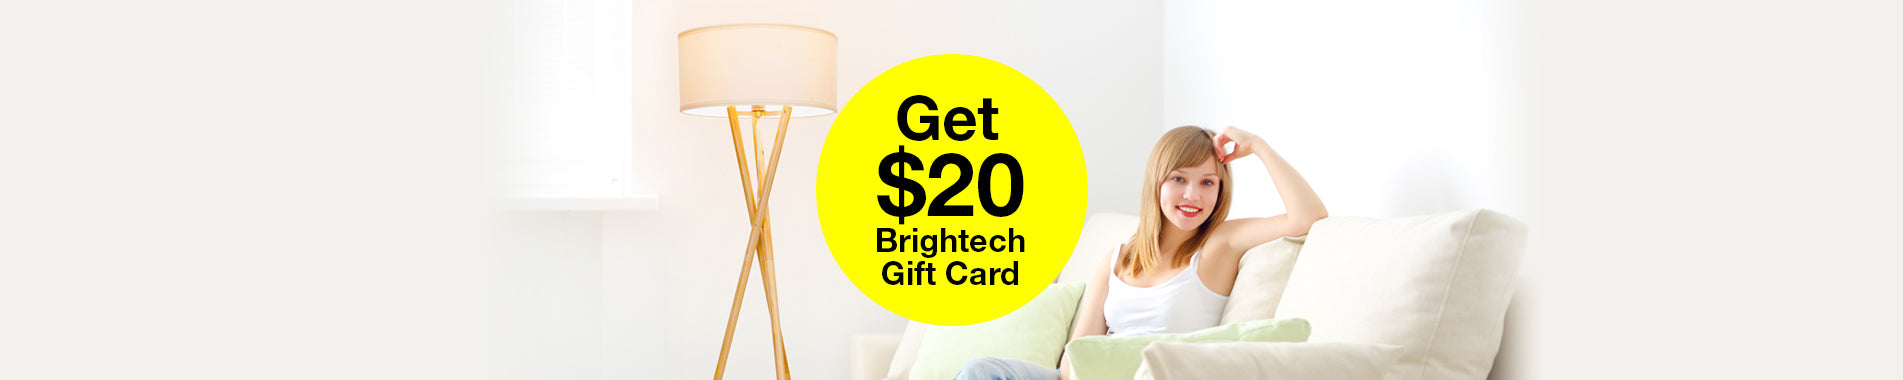 Get a $20 Brightech Gift Card! Instagram Giveaway